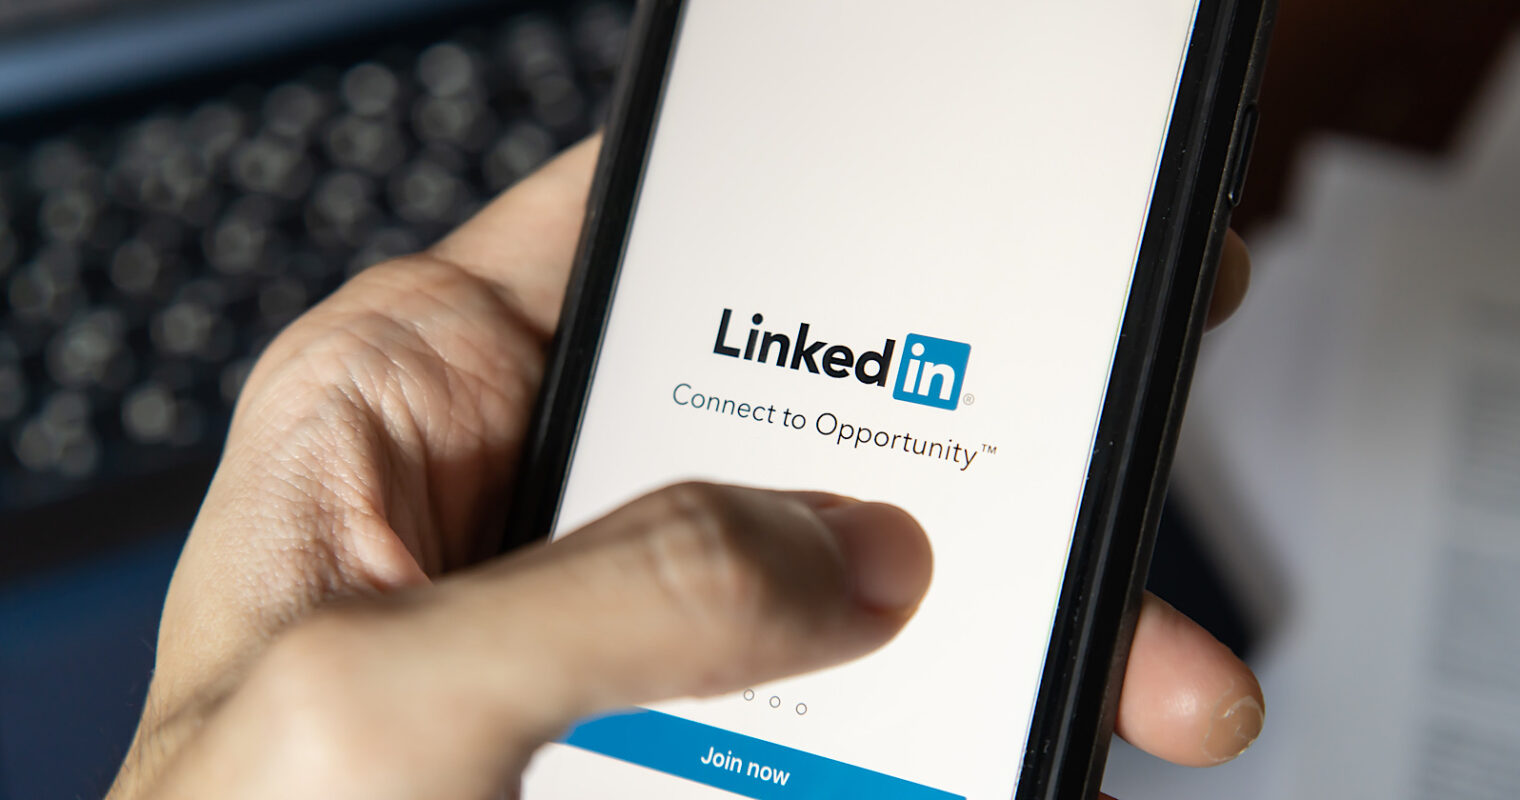 LinkedIn Users Can Now Control Who Sees Their Posts